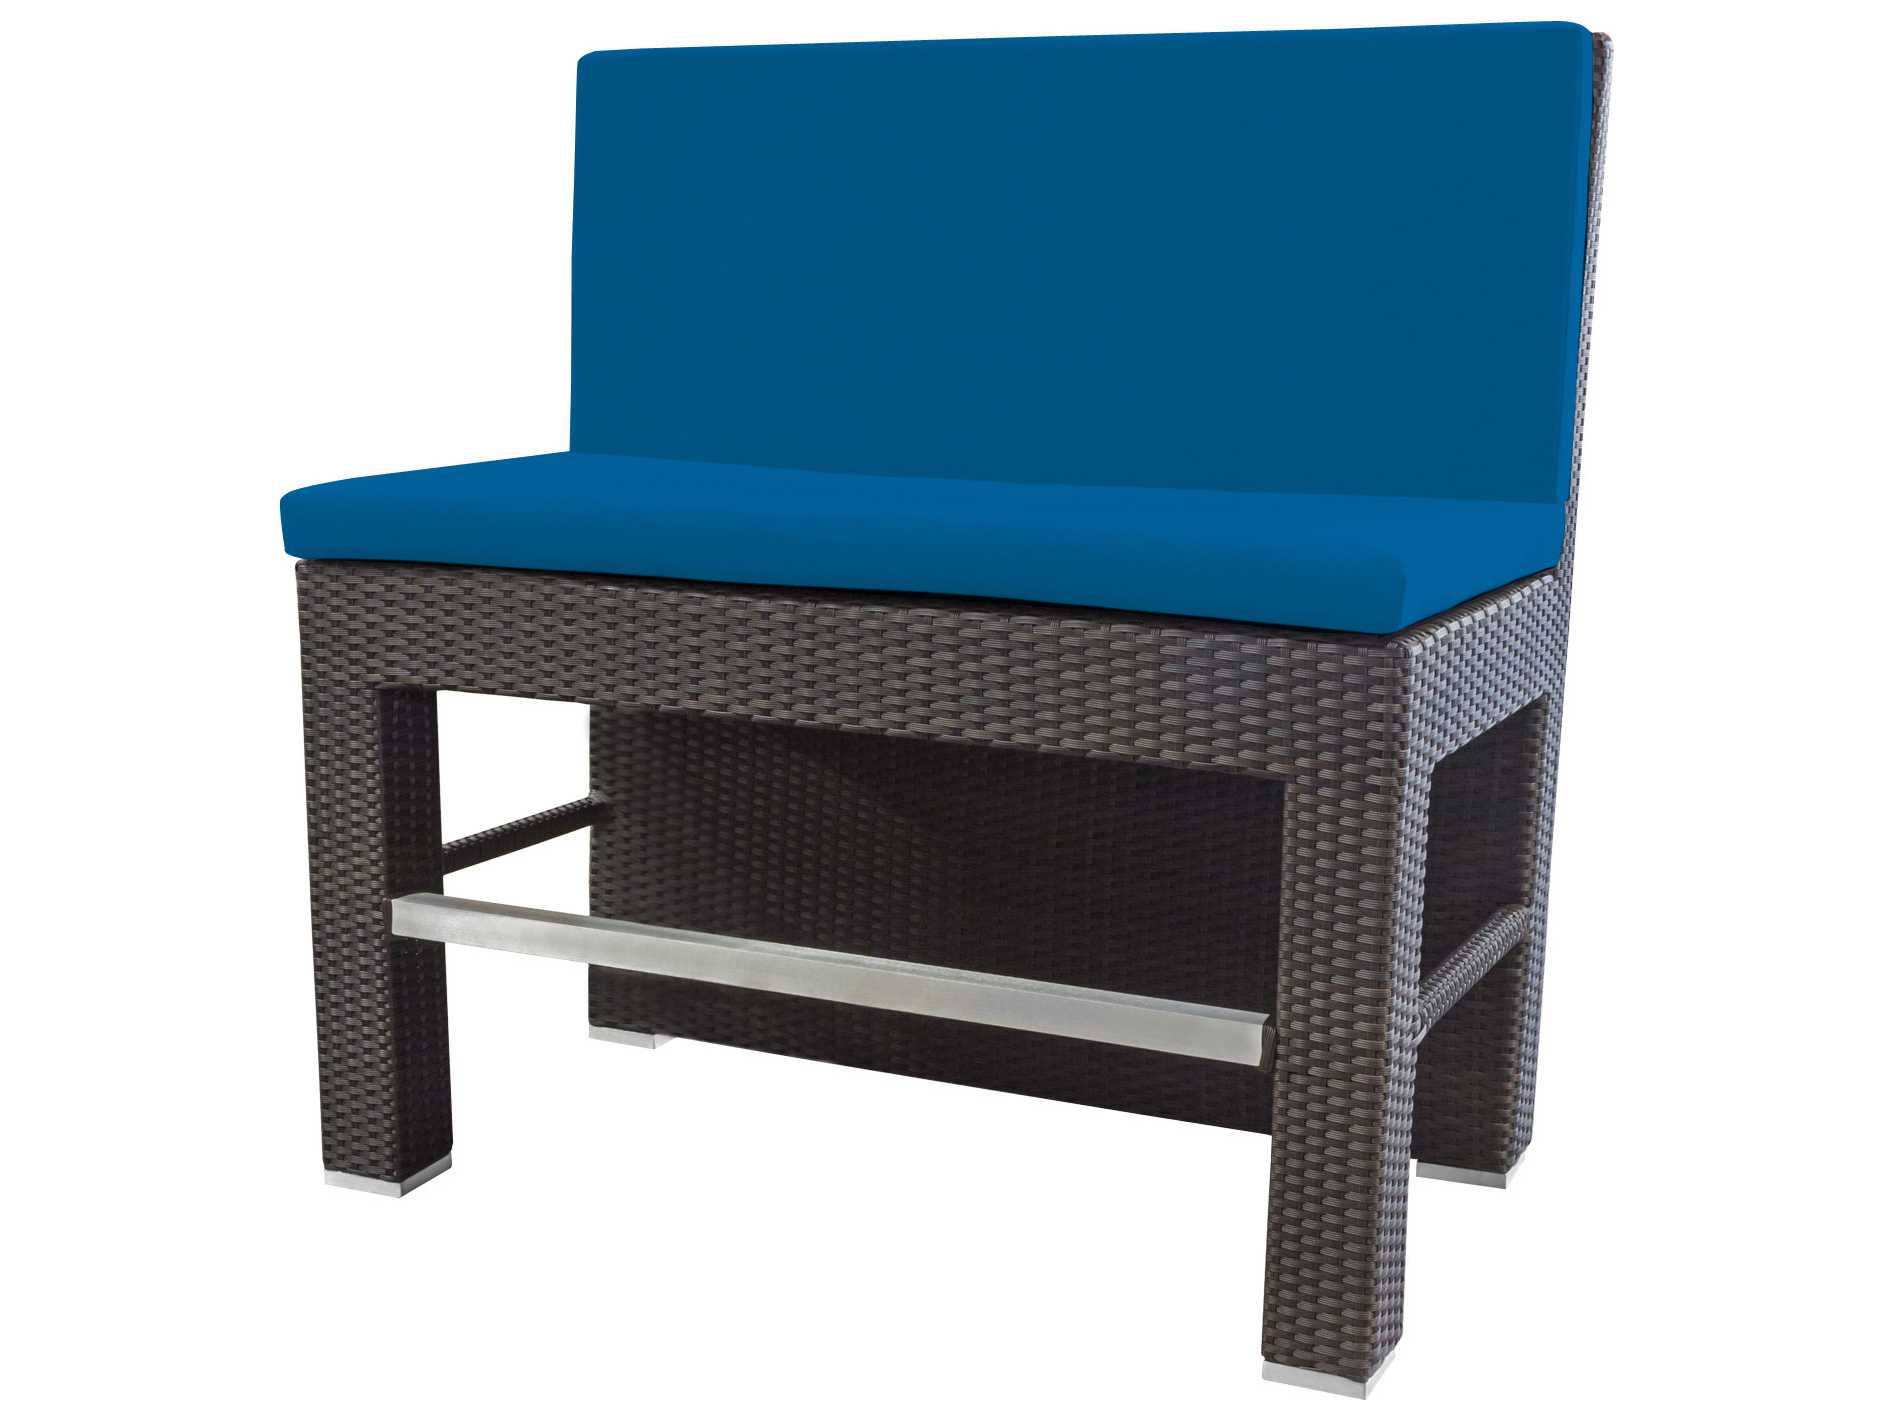 Source Outdoor Furniture Roma Wicker Bar Booth SC 2017 174 : SCSC2017174zm from www.patioliving.com size 1893 x 1420 jpeg 98kB